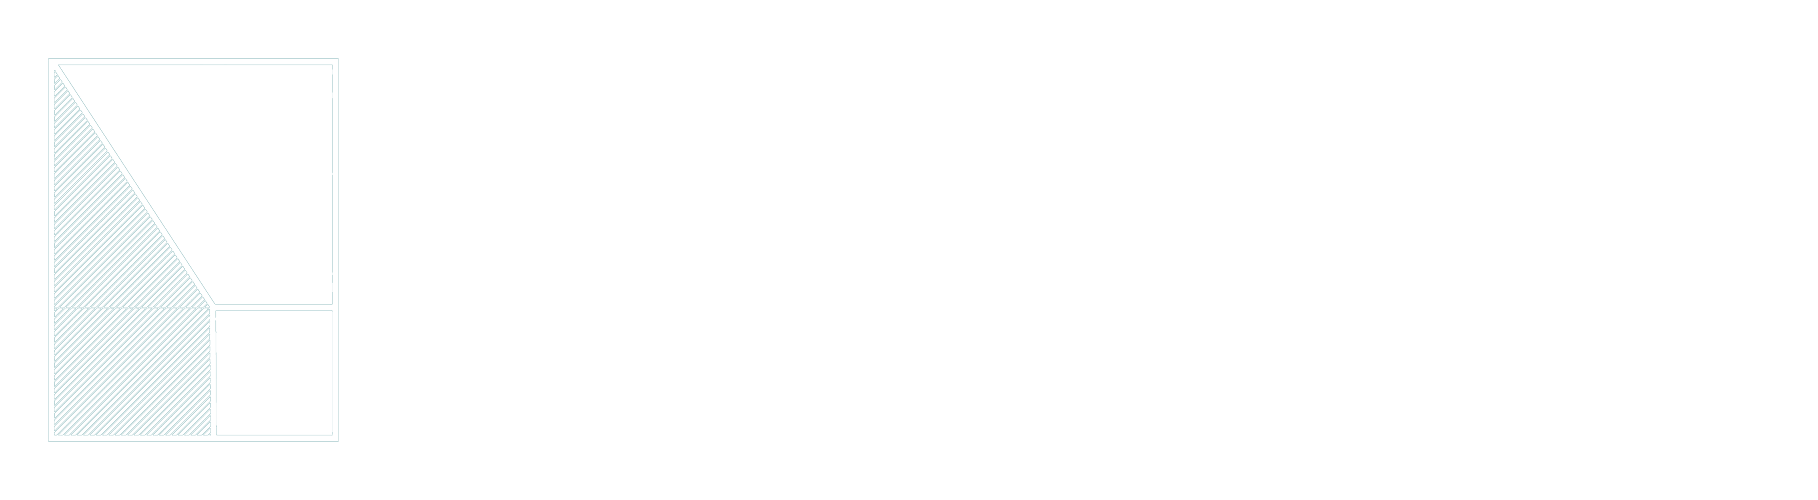 RSU - DEPARTMENT OF INTERIOR DESIGN